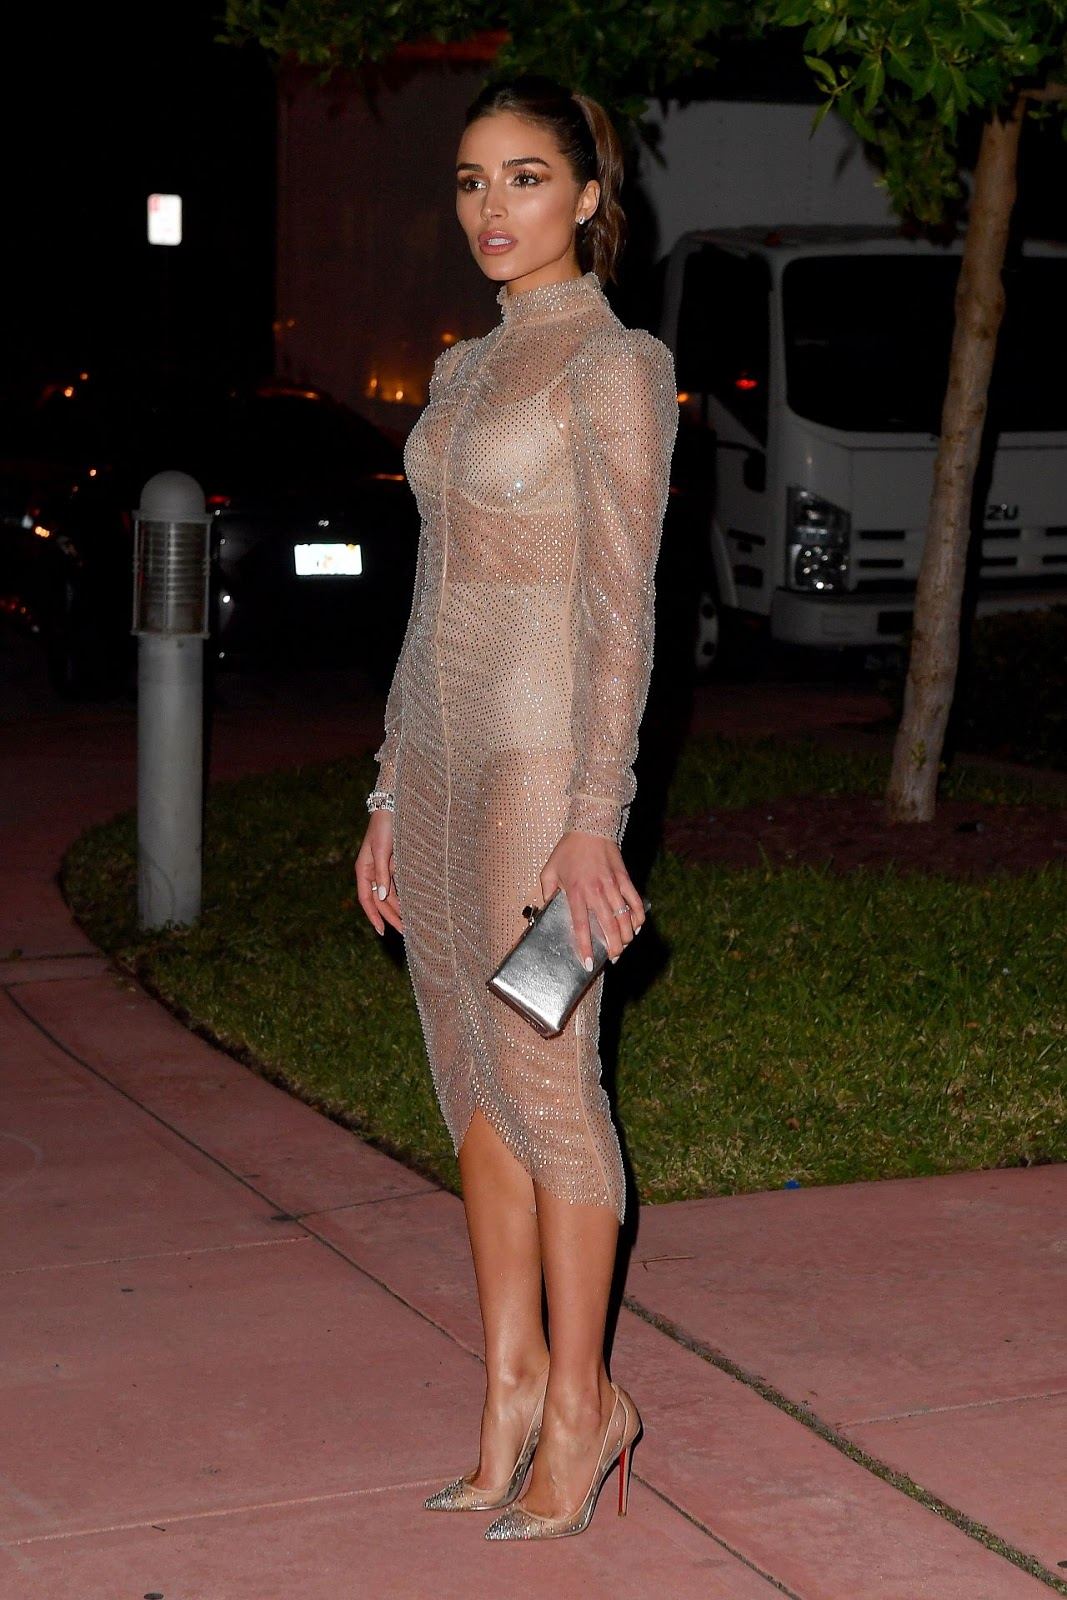 Olivia Culpo puts nude lingerie on show in sheer dress out and about in Miami